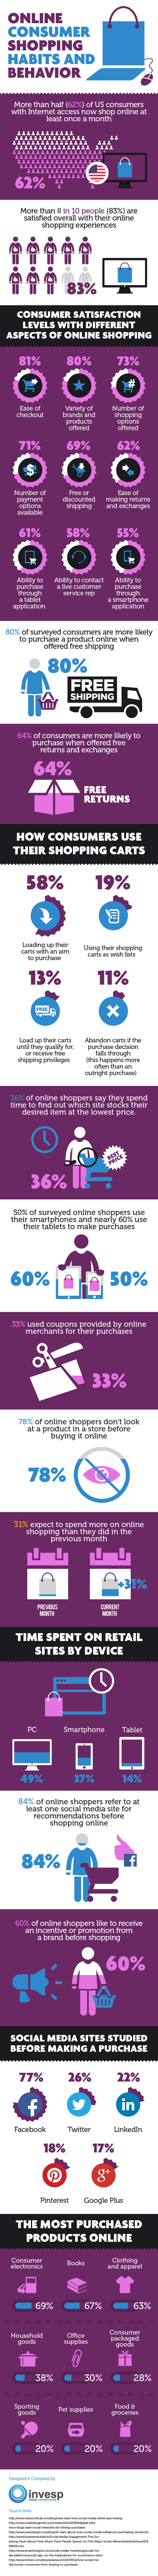 consumer behaviar in online shopping essay Online shopping in india, saw 128% growth in interest from the consumers in the year 2011 to 2012 in comparison to only 40% growth in 2010 to 2011, making 2012 the tipping point for online shopping in india.